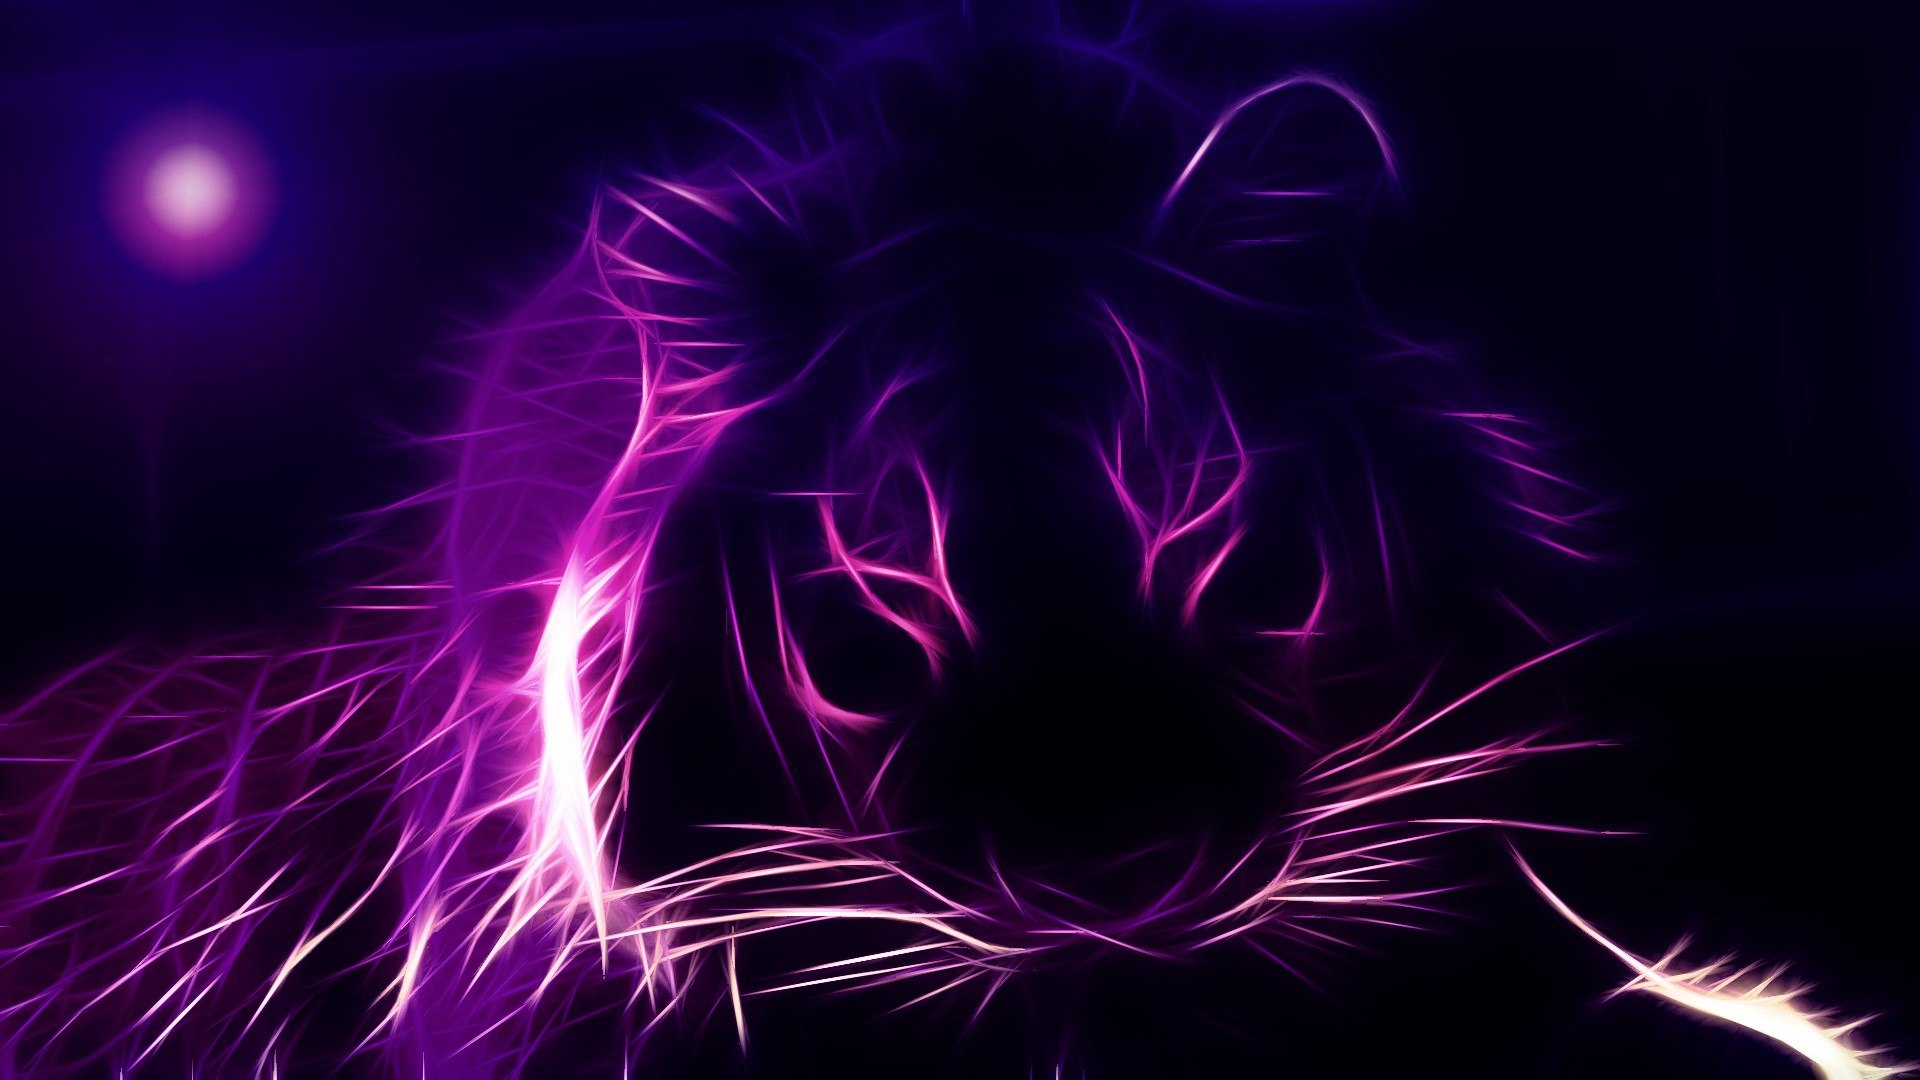 Neon Wallpapers Free